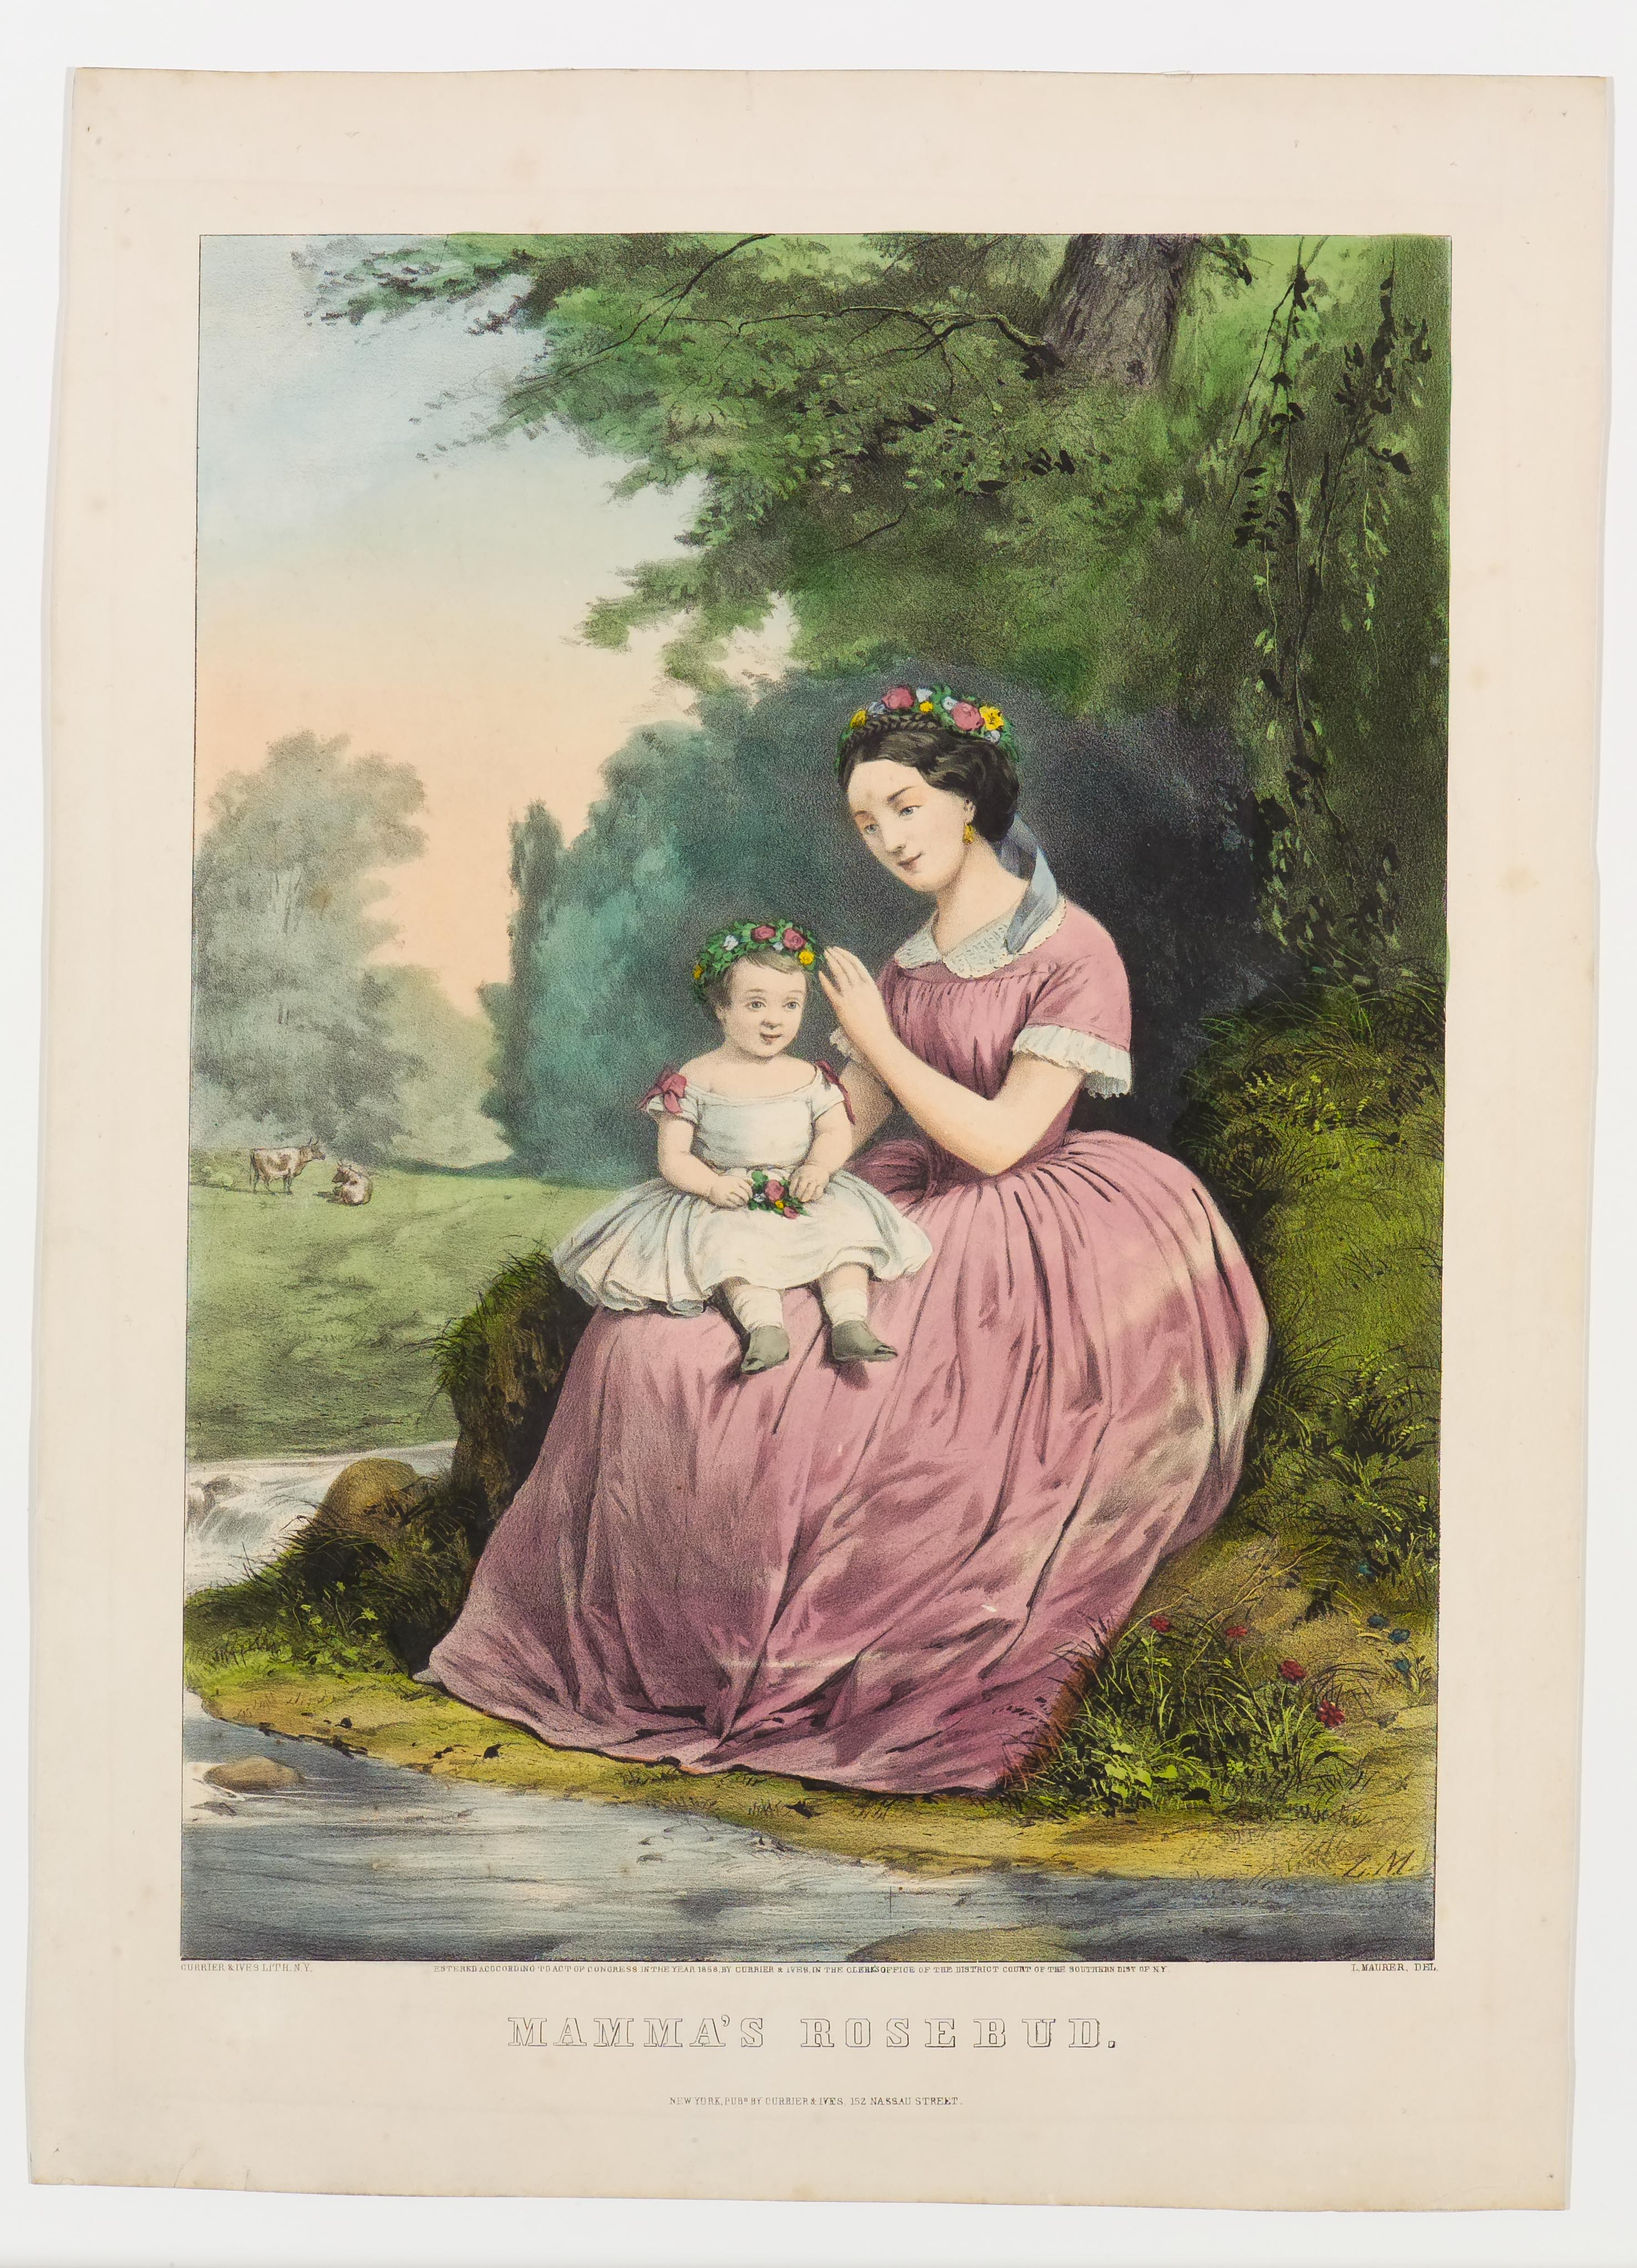 Seated woman and child along riverbank; child facing center